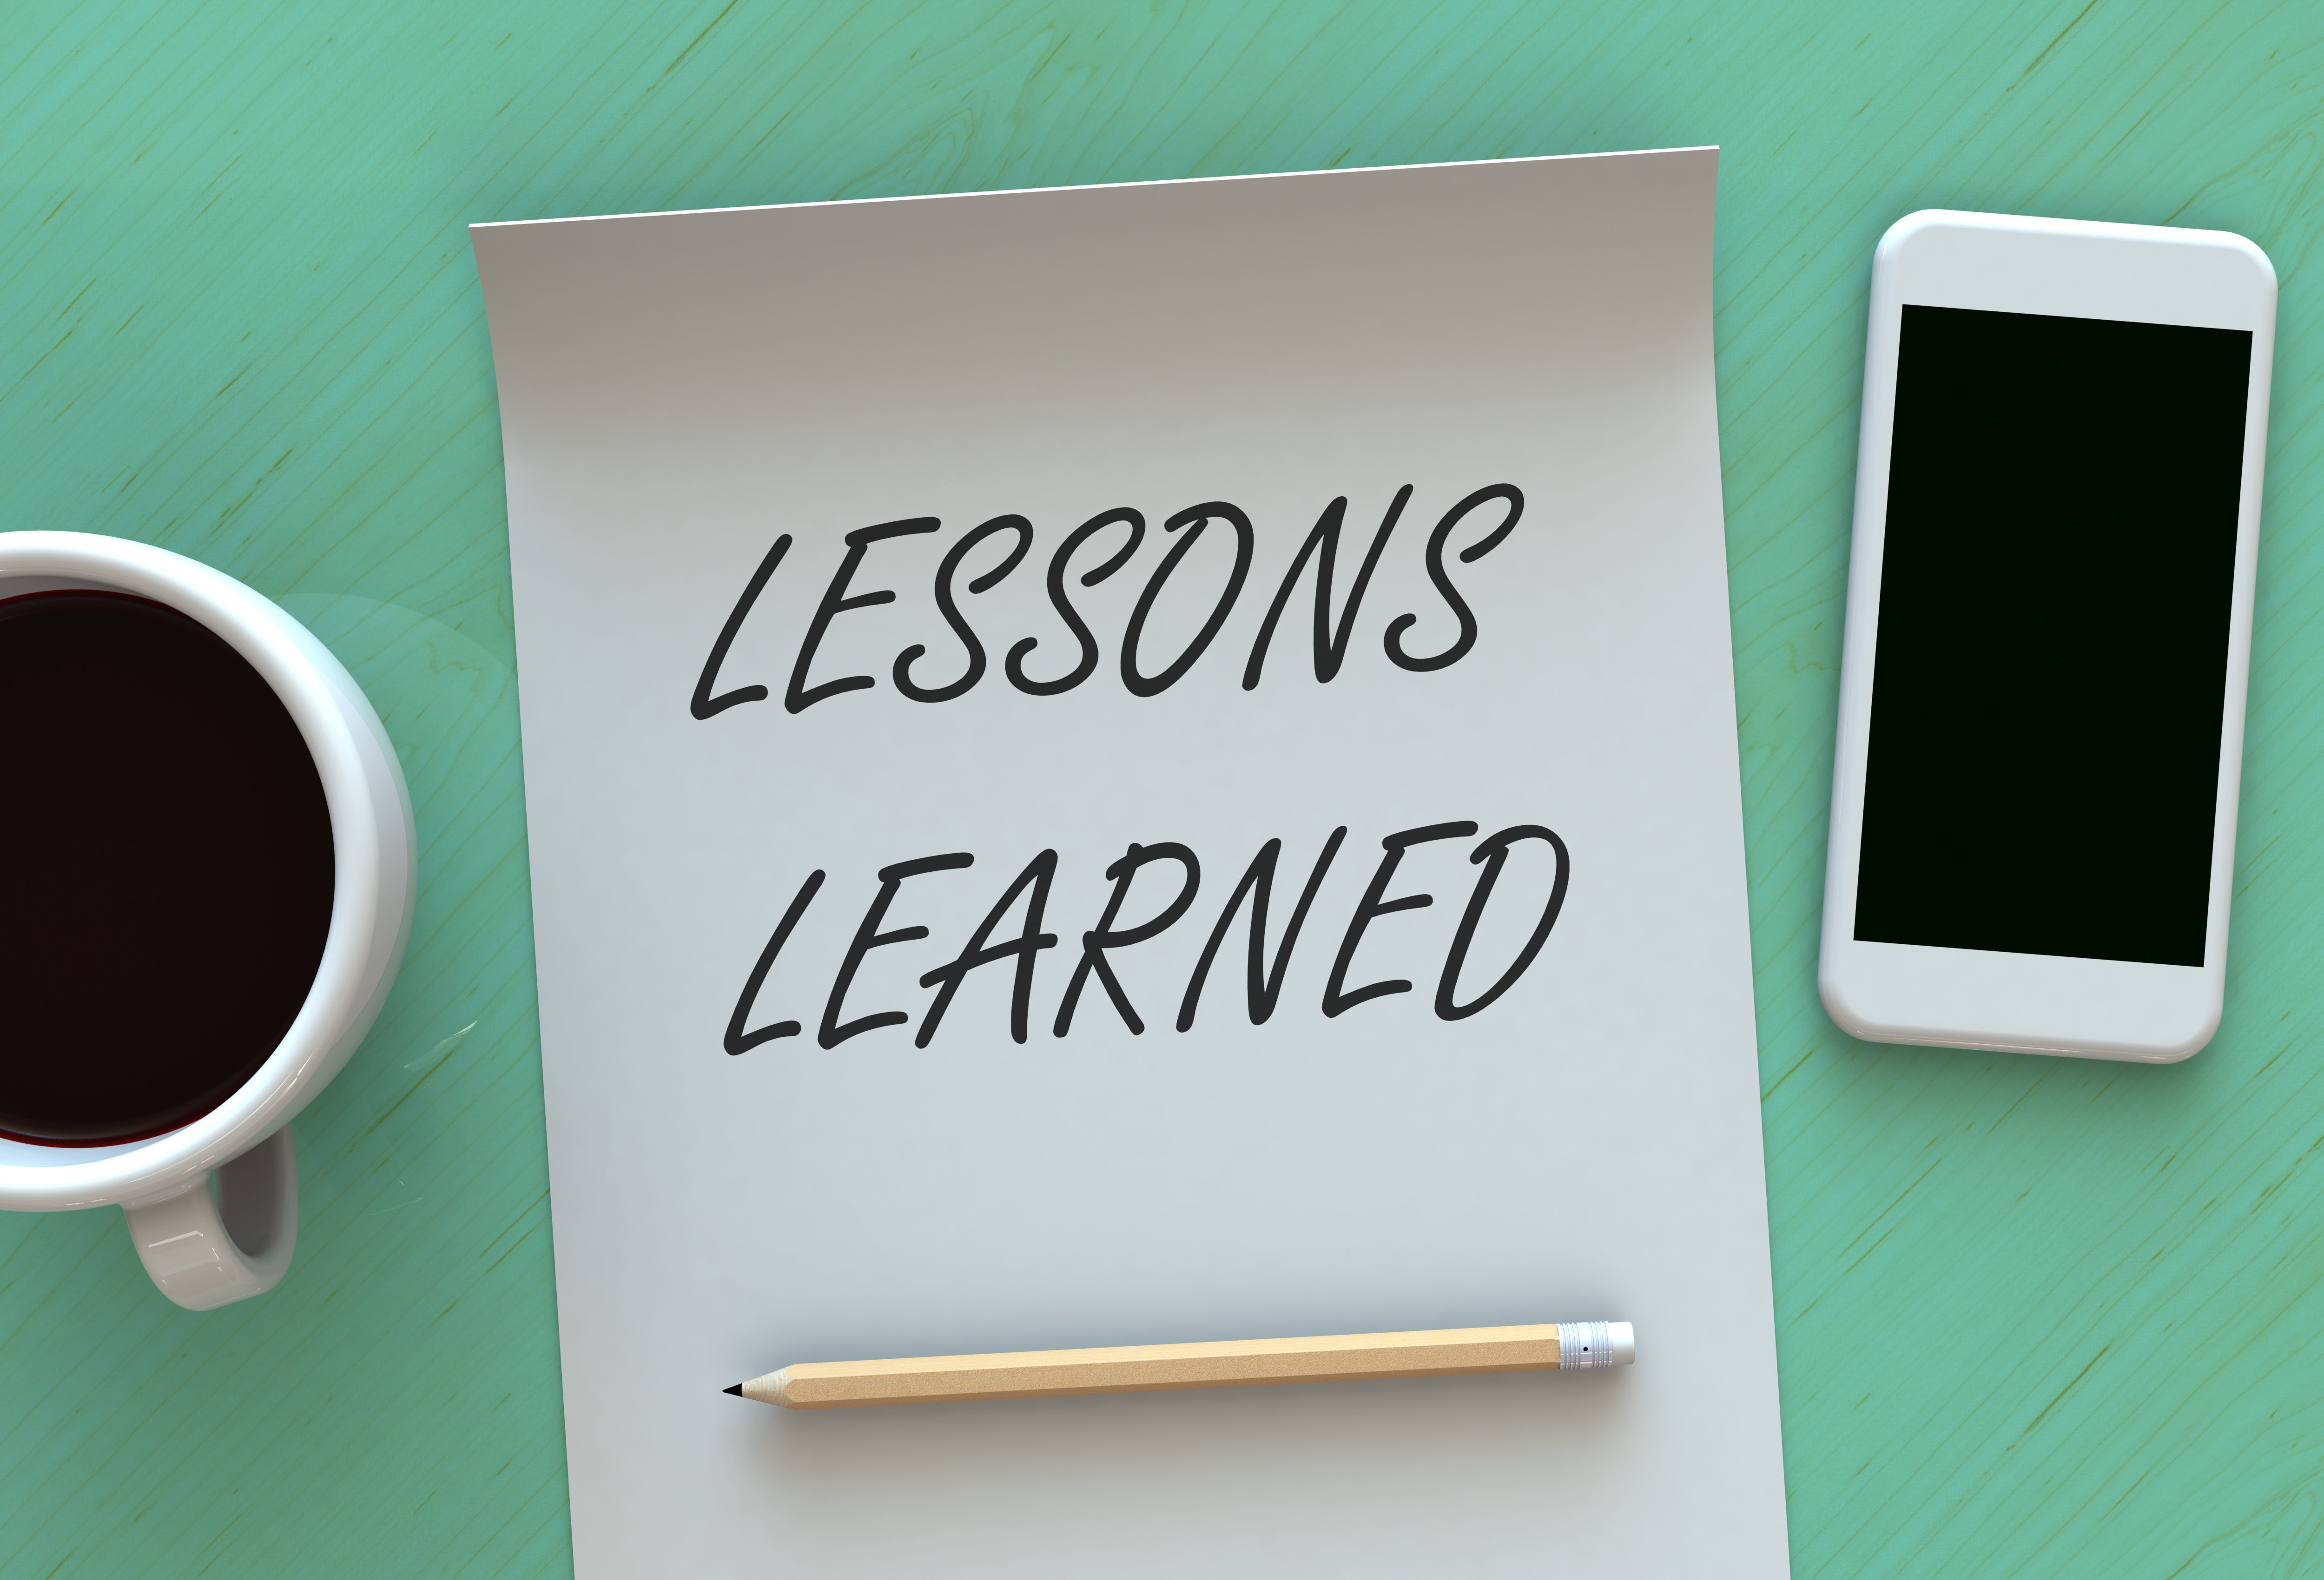 5 Innovation Cultures and Lessons Learned